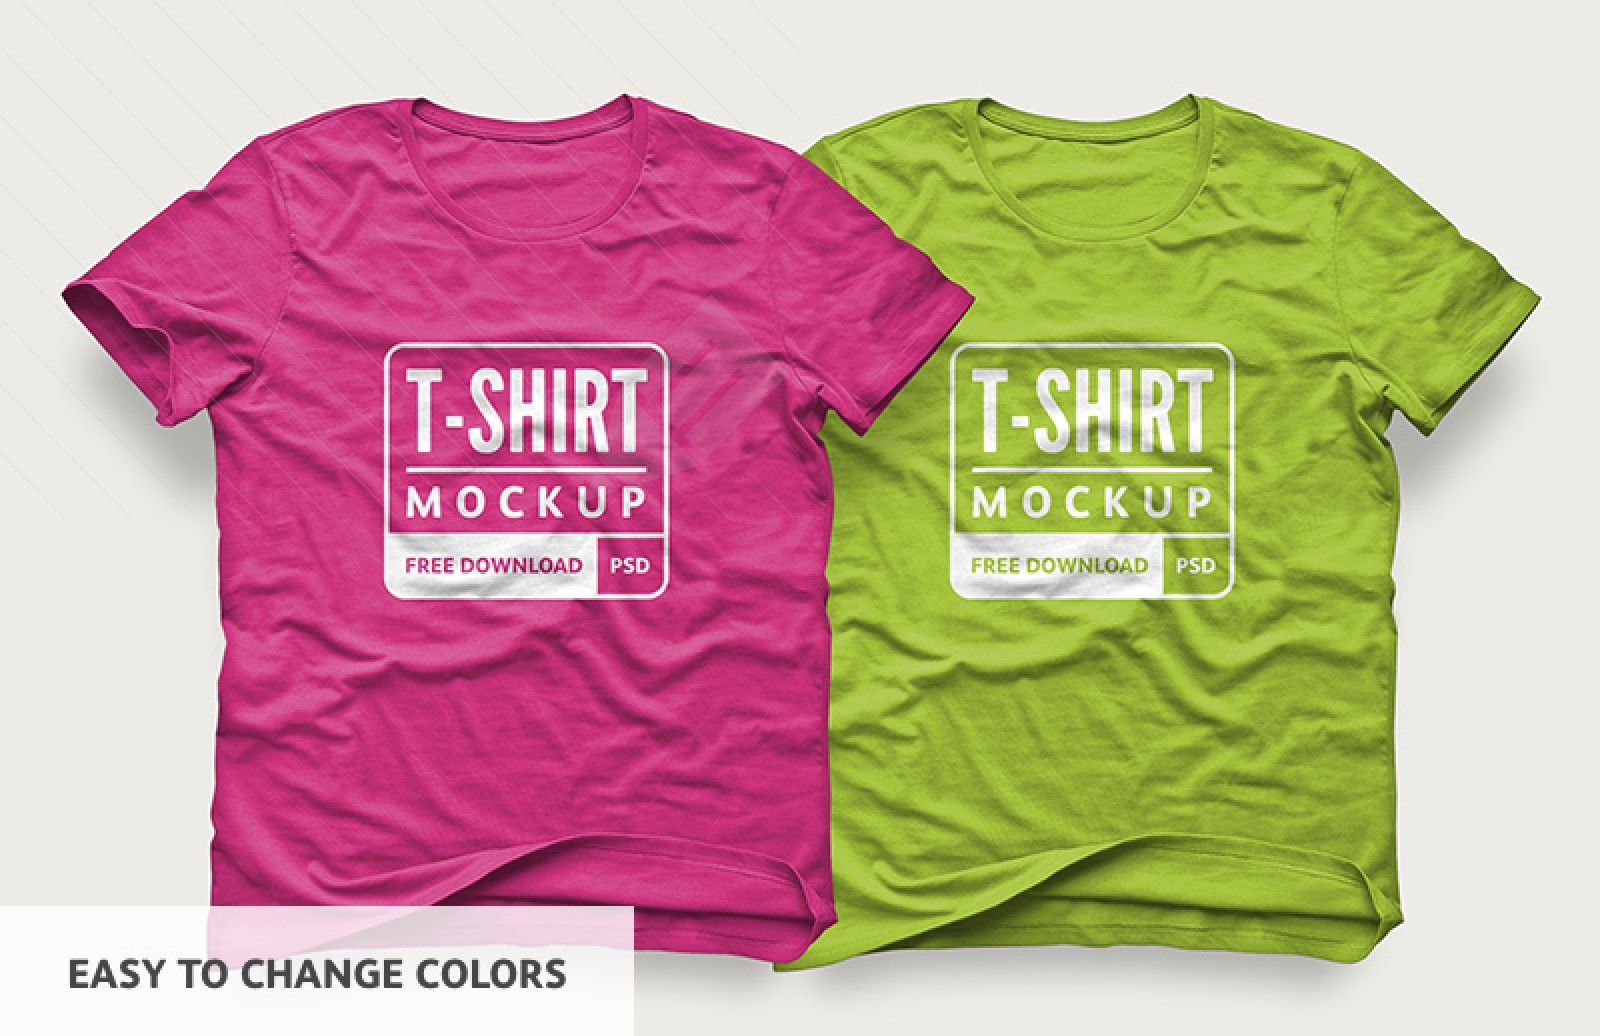 t shirt mockup template free download.html